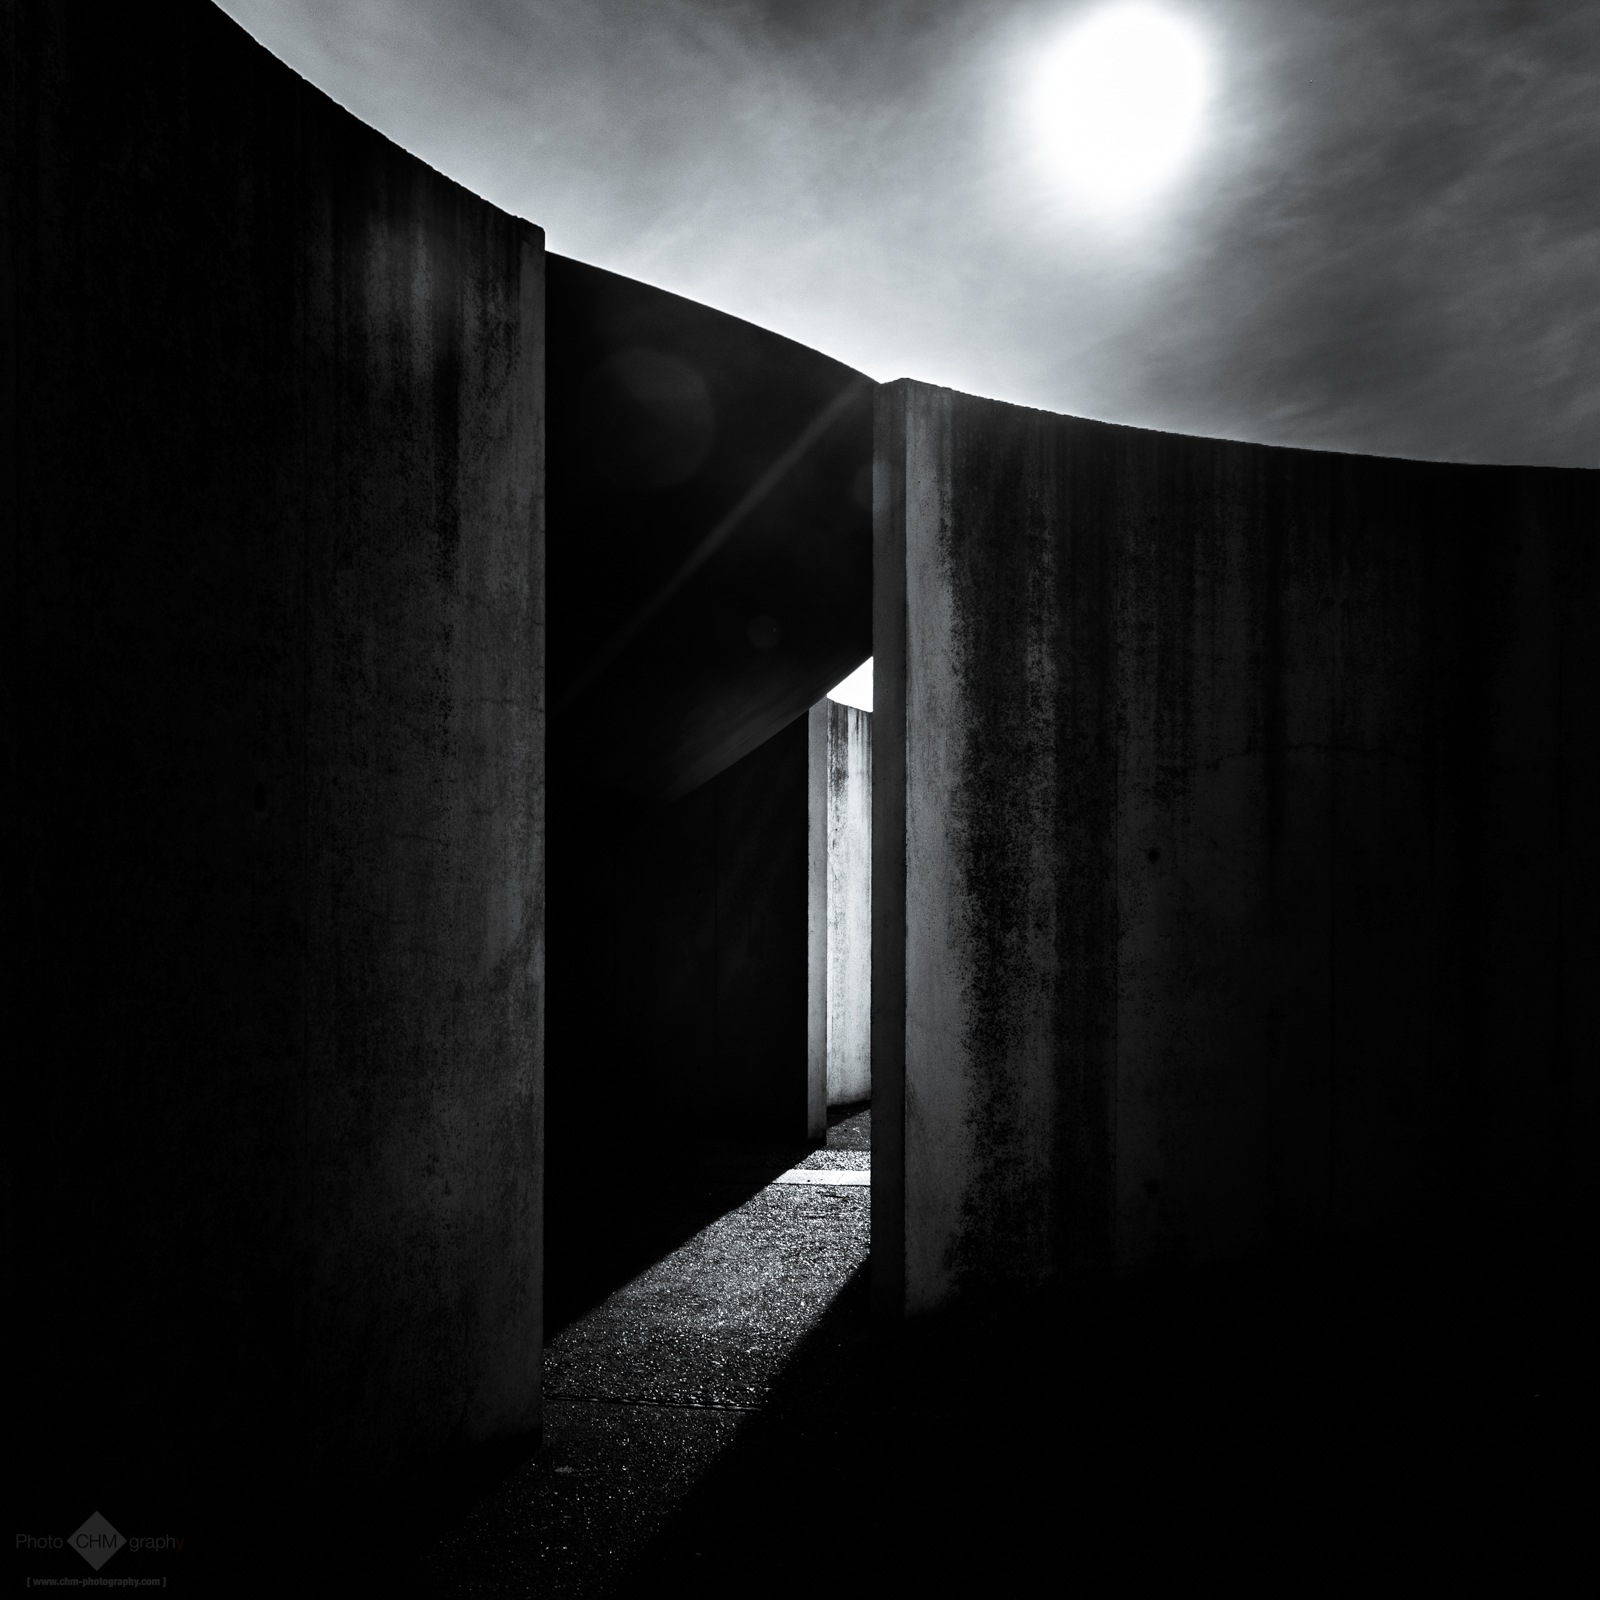 Into the light by Christian Meermann